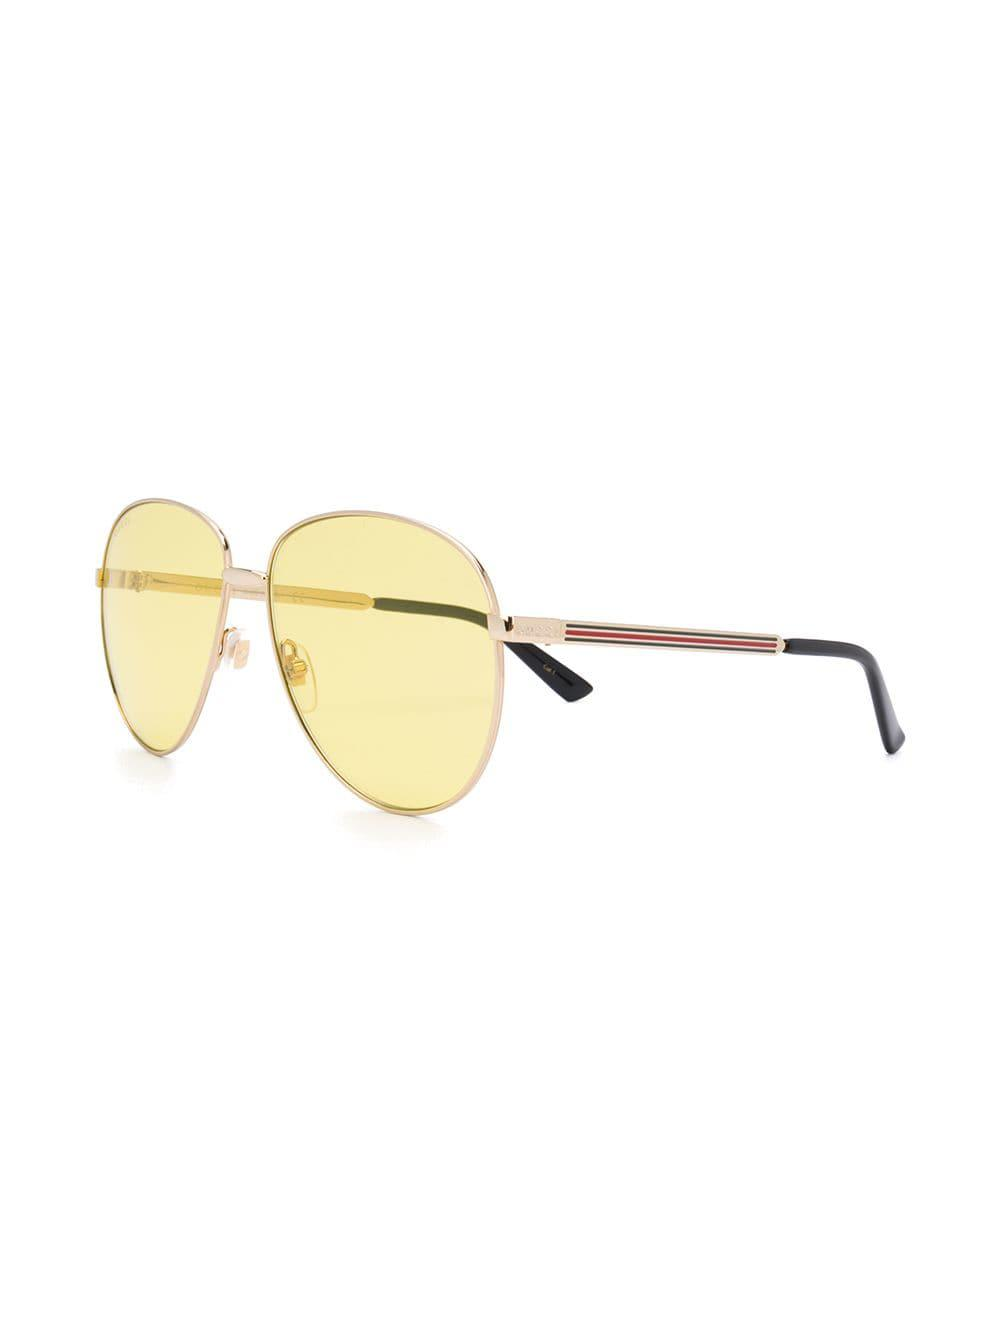 52d1d155d61 Lyst - Gucci Aviator-style Sunglasses in Metallic for Men